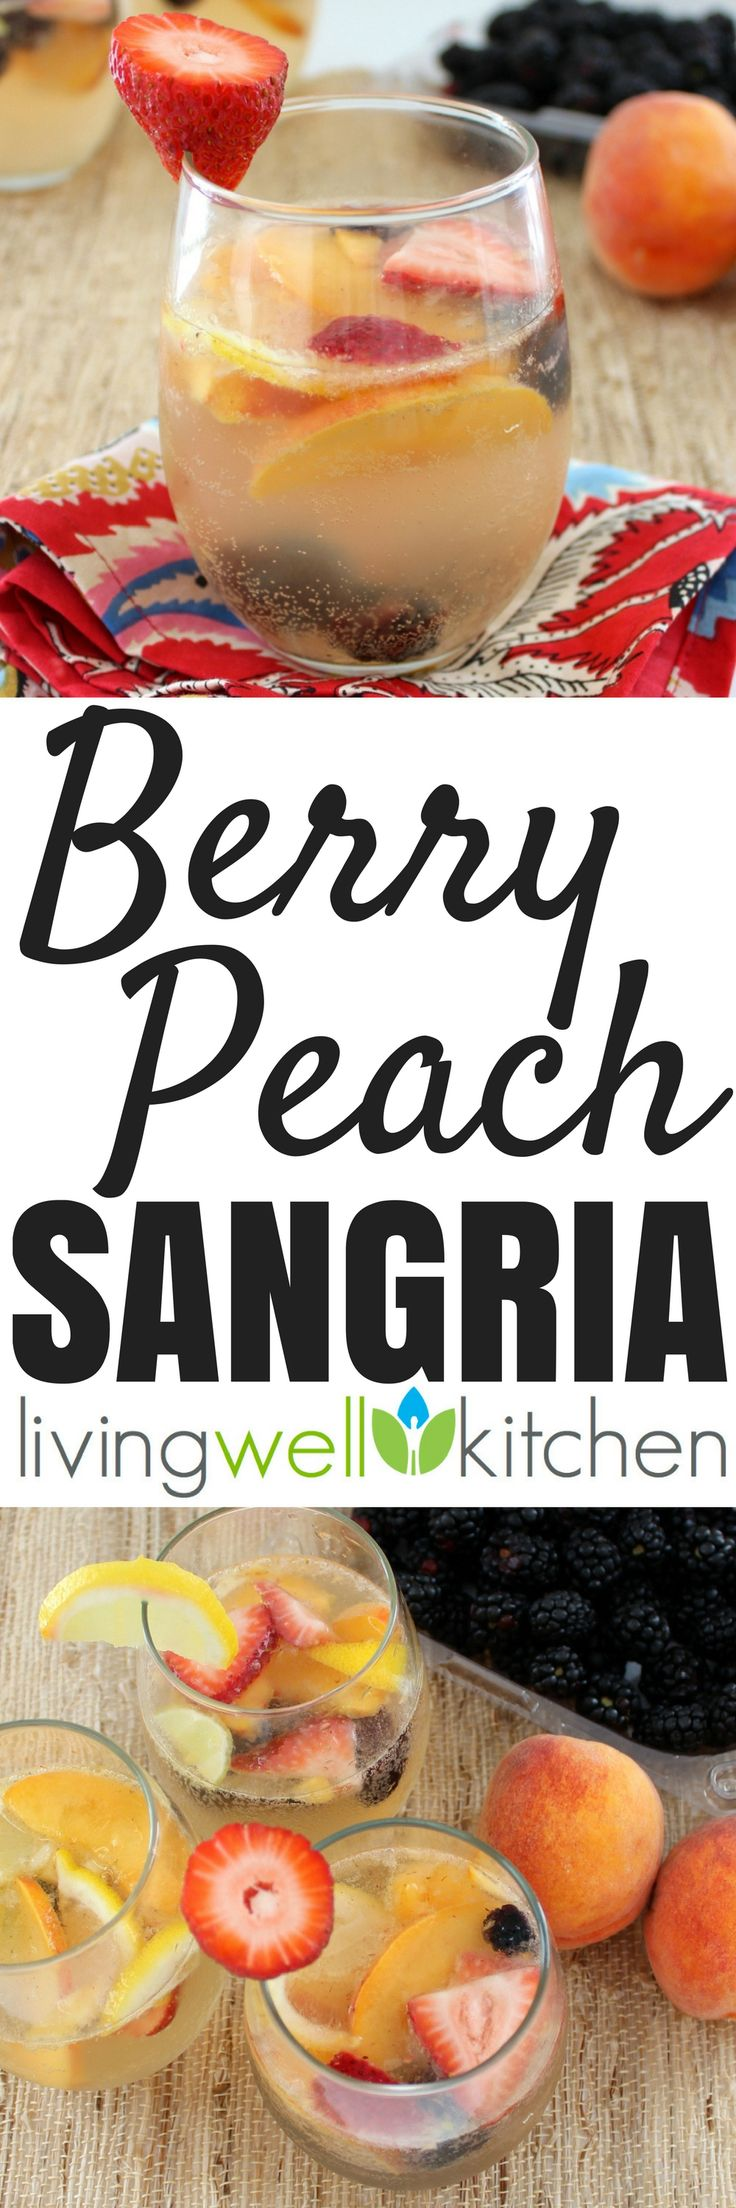 Berry Peach Sangria from @memeinge is full of summery fruit and made with white wine to make it a refreshingly perfect adult beverage idea for warm weather with no added sugar. Great drink recipe to make for a party or a fun summer event